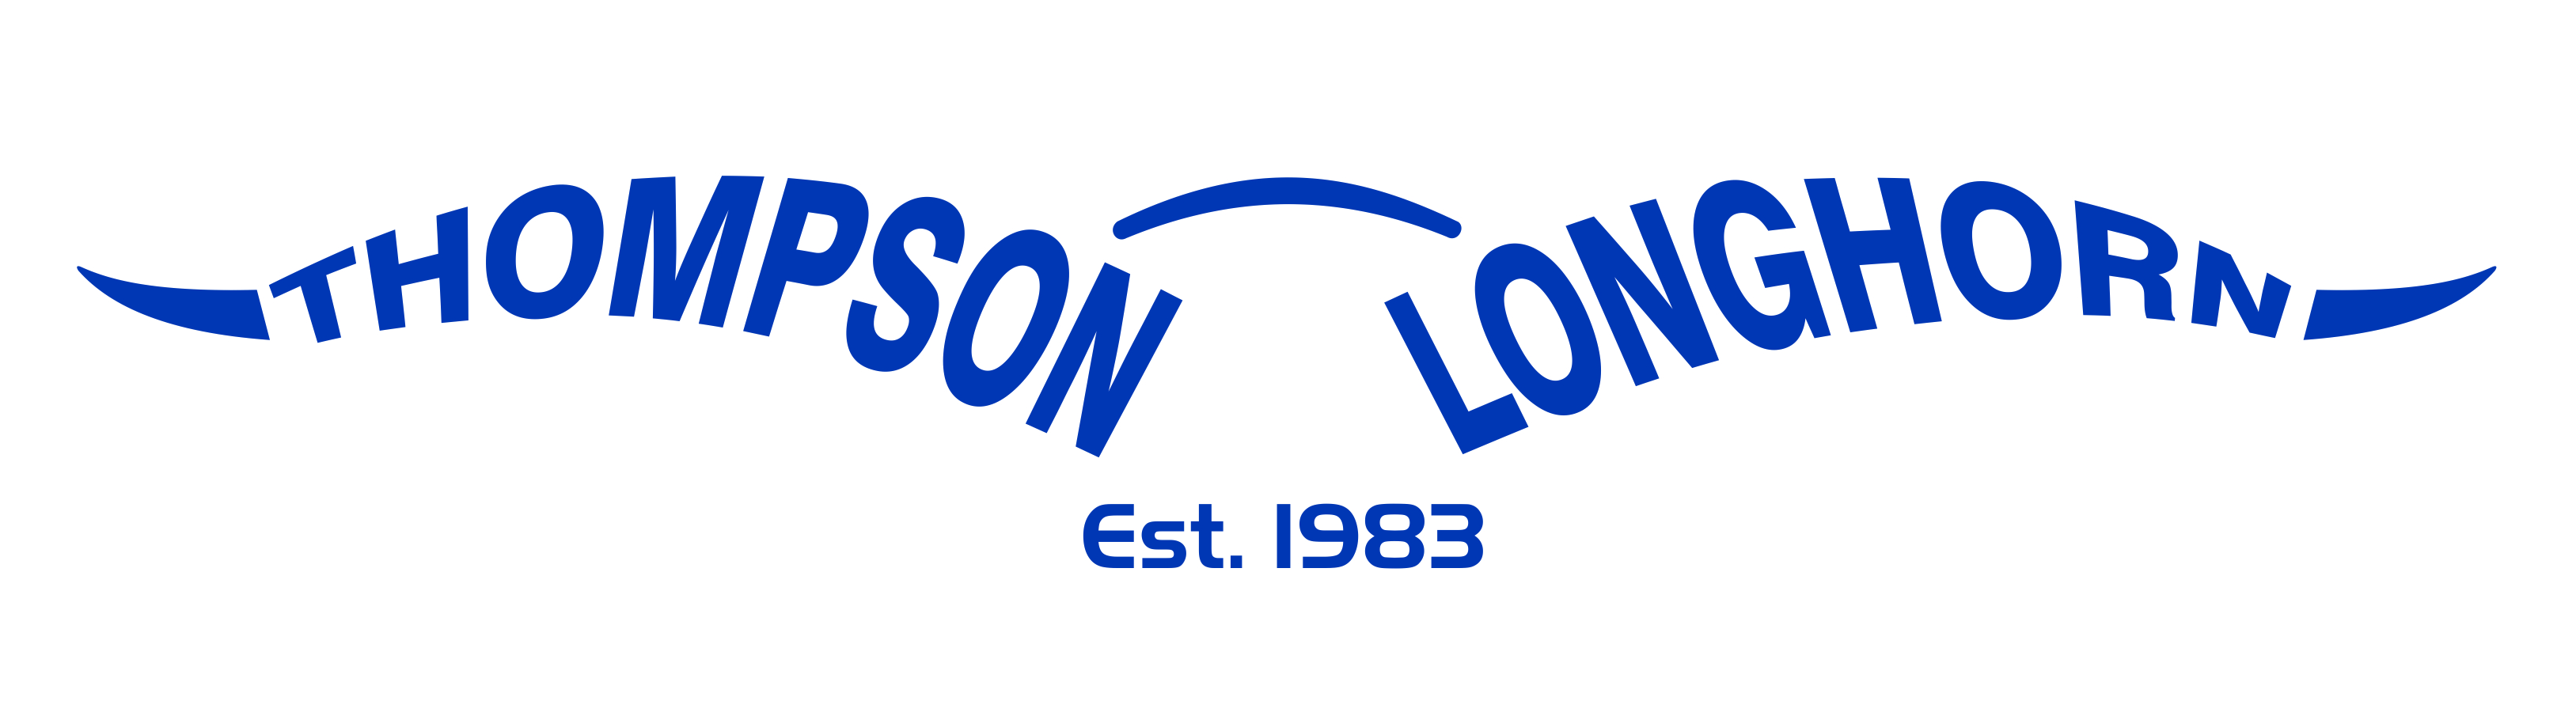 thompson-longhorn-logo-1